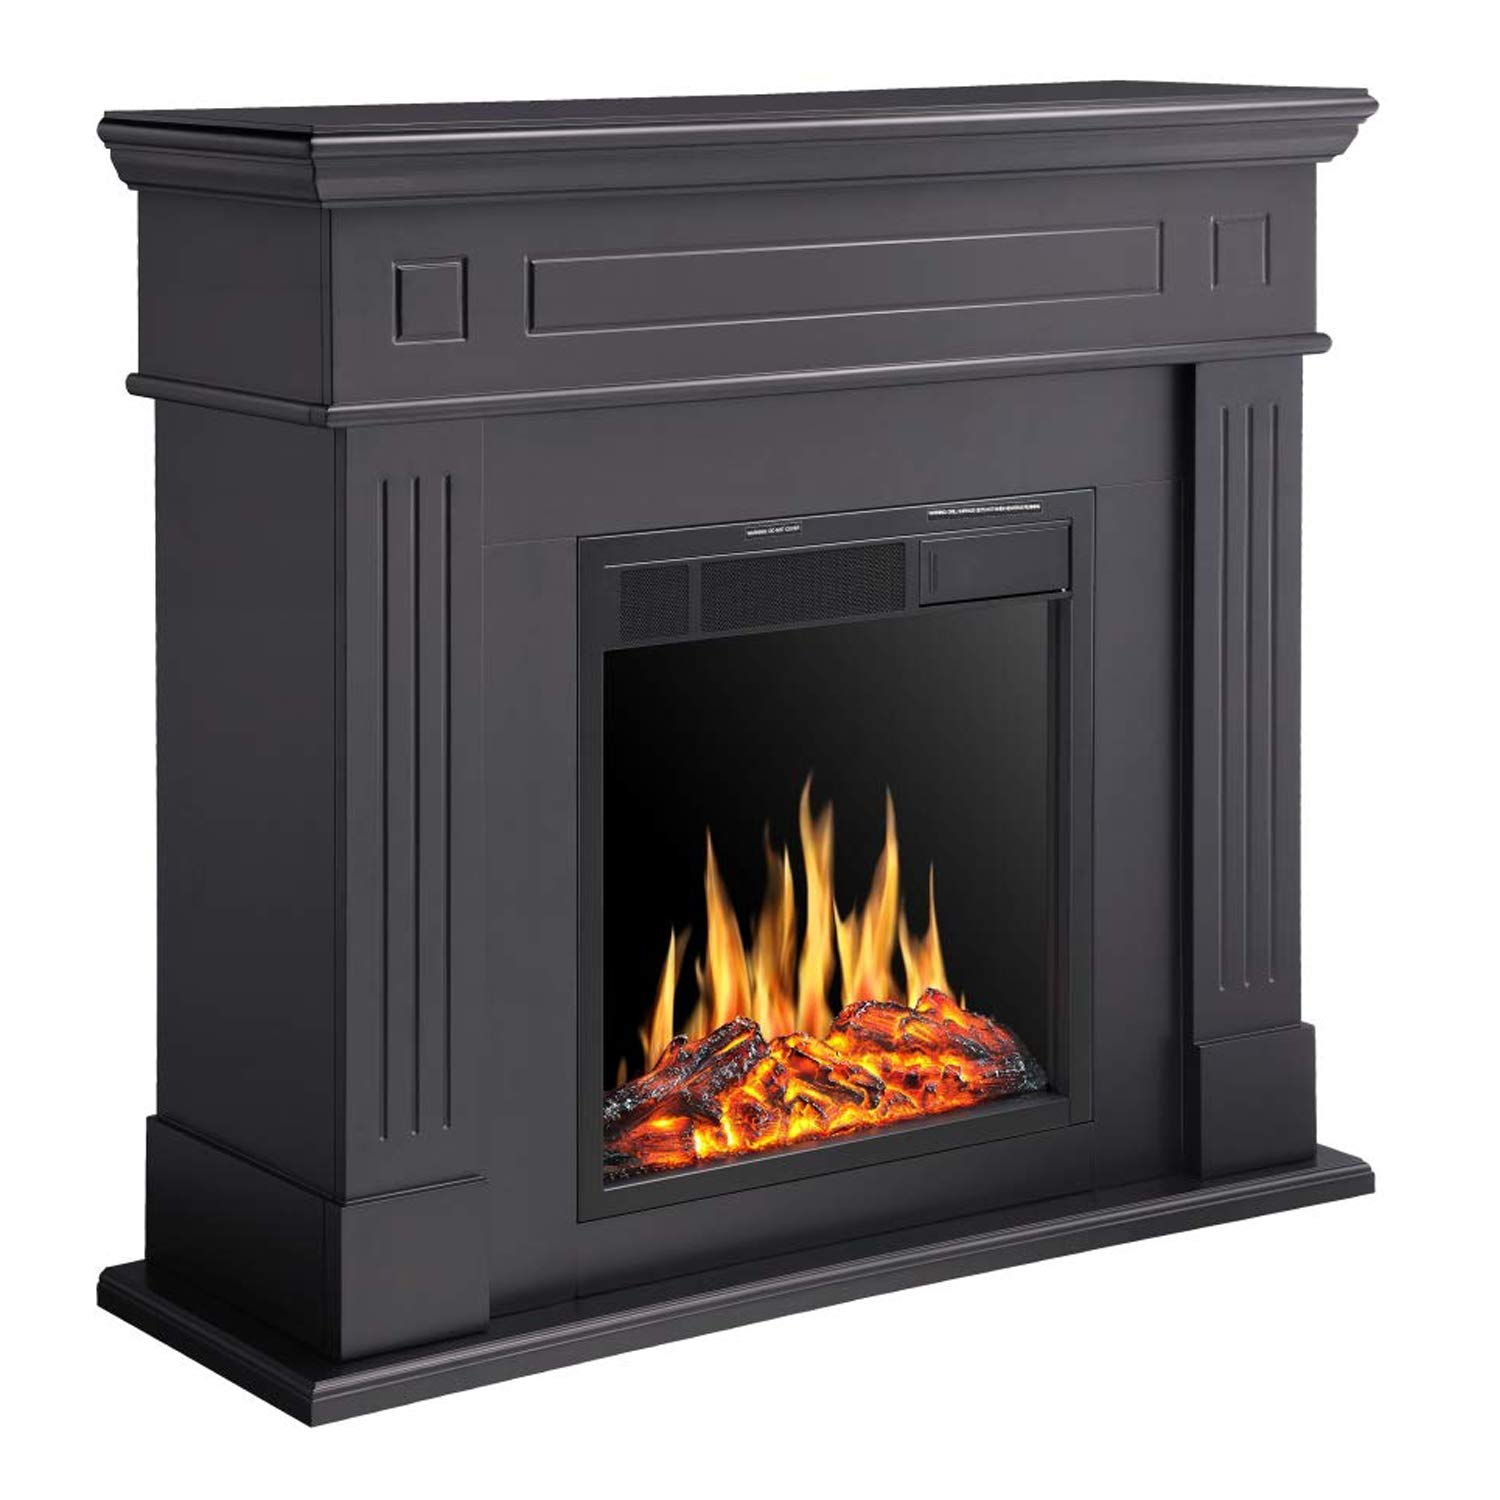 R.W.FLAME Electric Fireplace Mantel Wooden Surround Firebox, Freestanding Corner Fireplace, Home Space Heather, Adjustable Led Flame, Remote Control,750W 1500W, Black